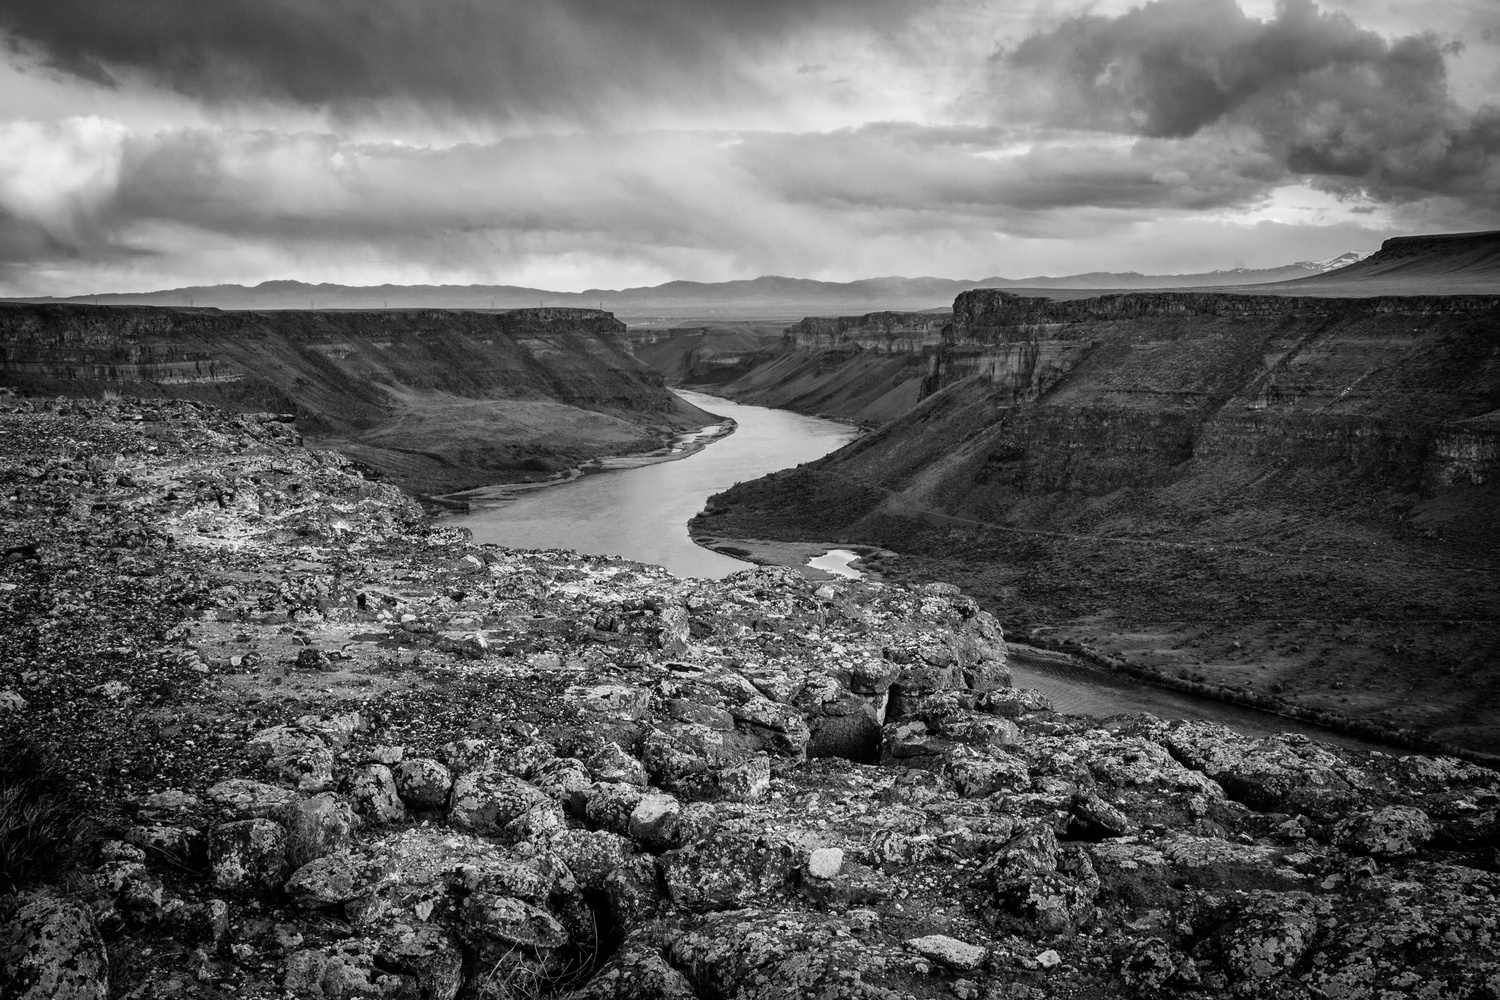 Snake River Canyon by Peter Bumbarger